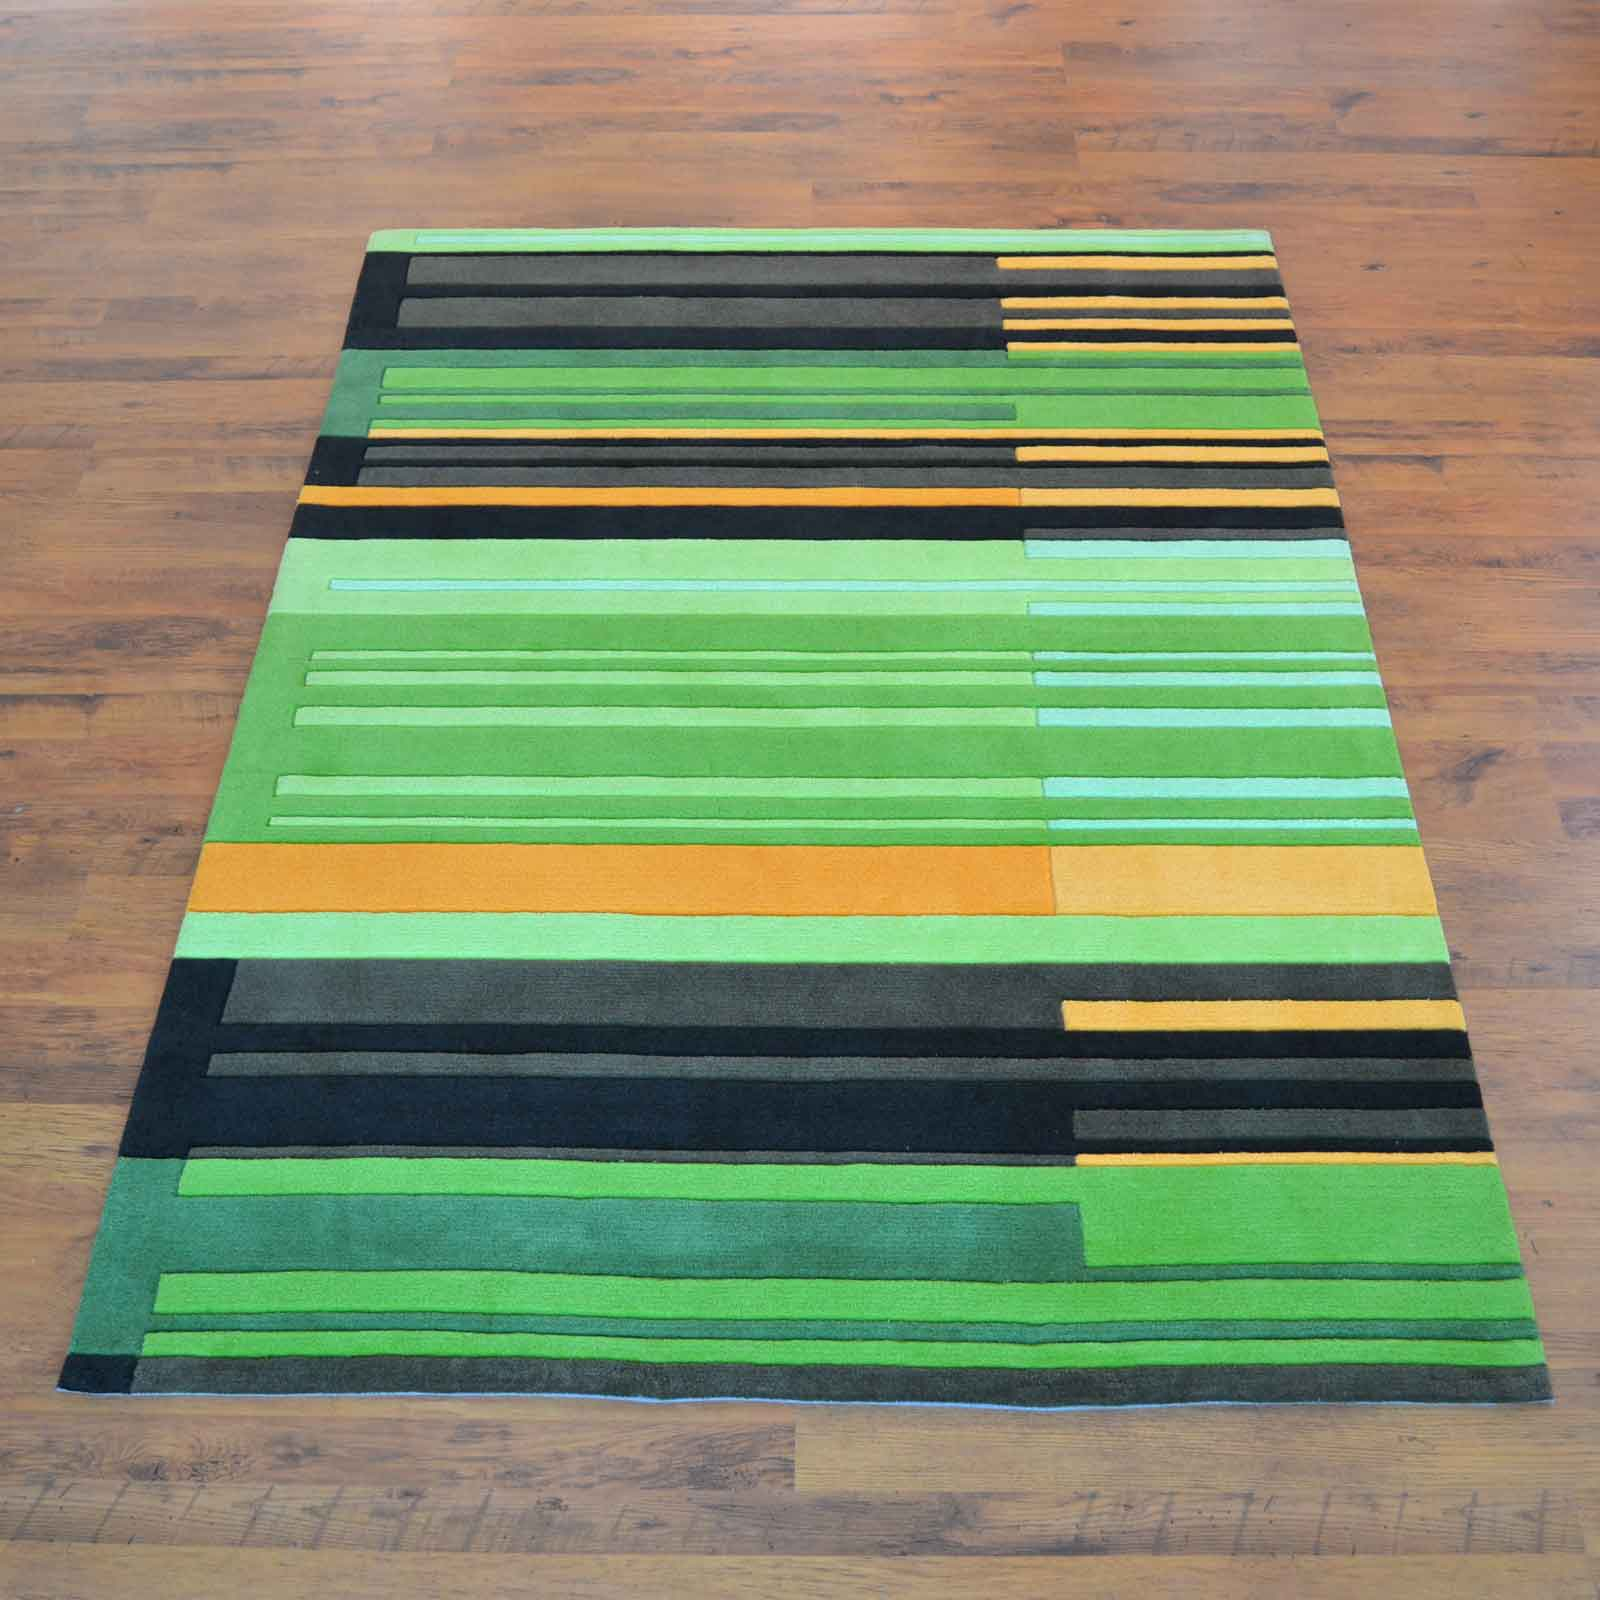 Colour Codes Rugs 4066 61 in Green